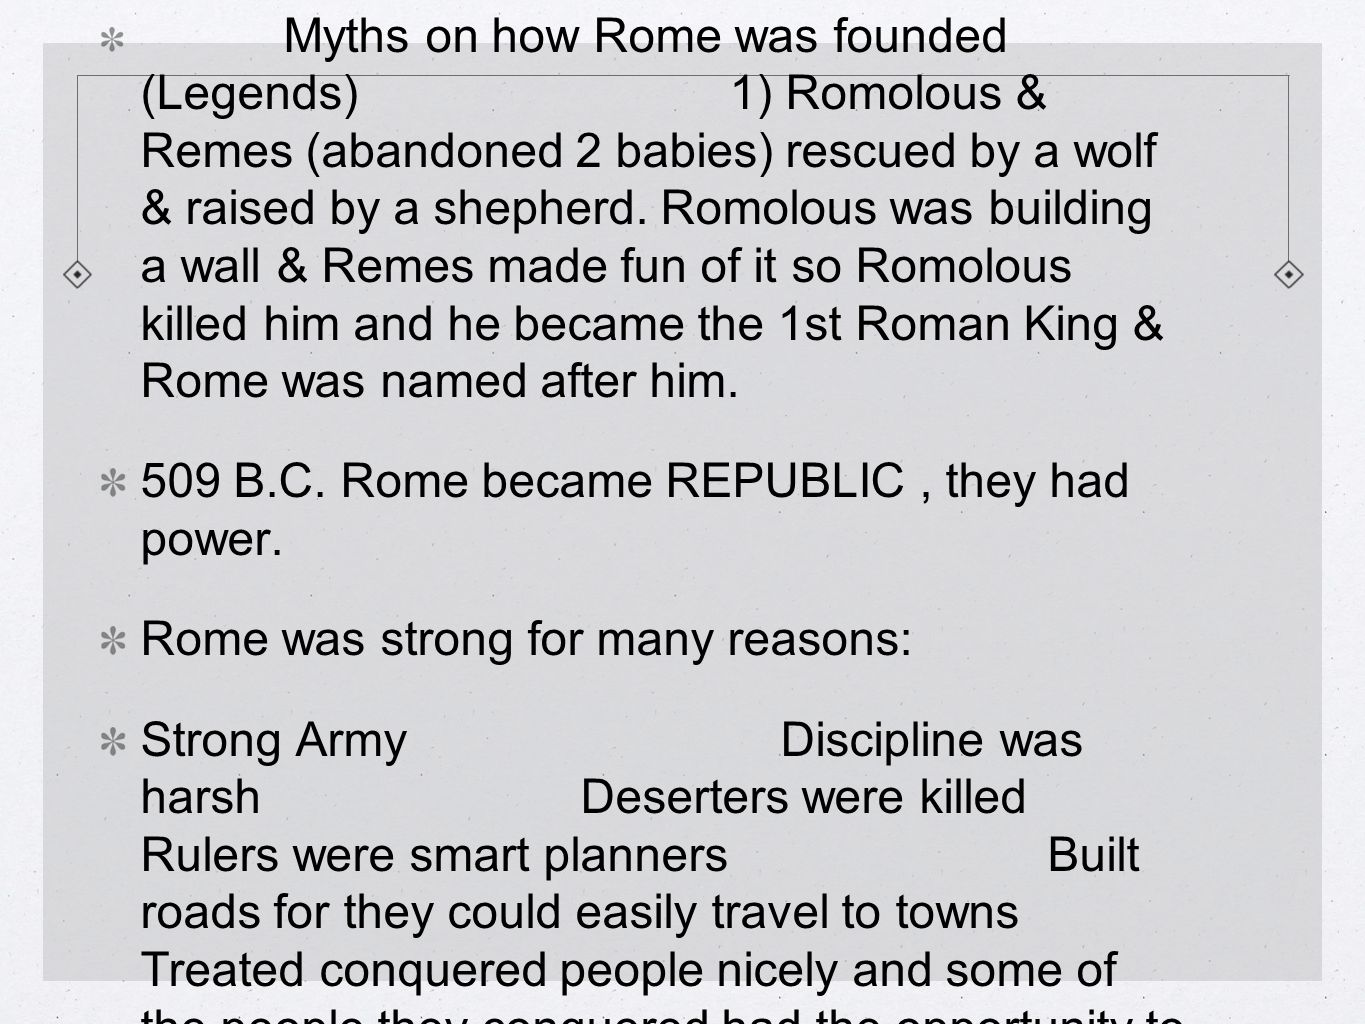 Myths on how Rome was founded (Legends) 1) Romolous & Remes (abandoned 2 babies) rescued by a wolf & raised by a shepherd.